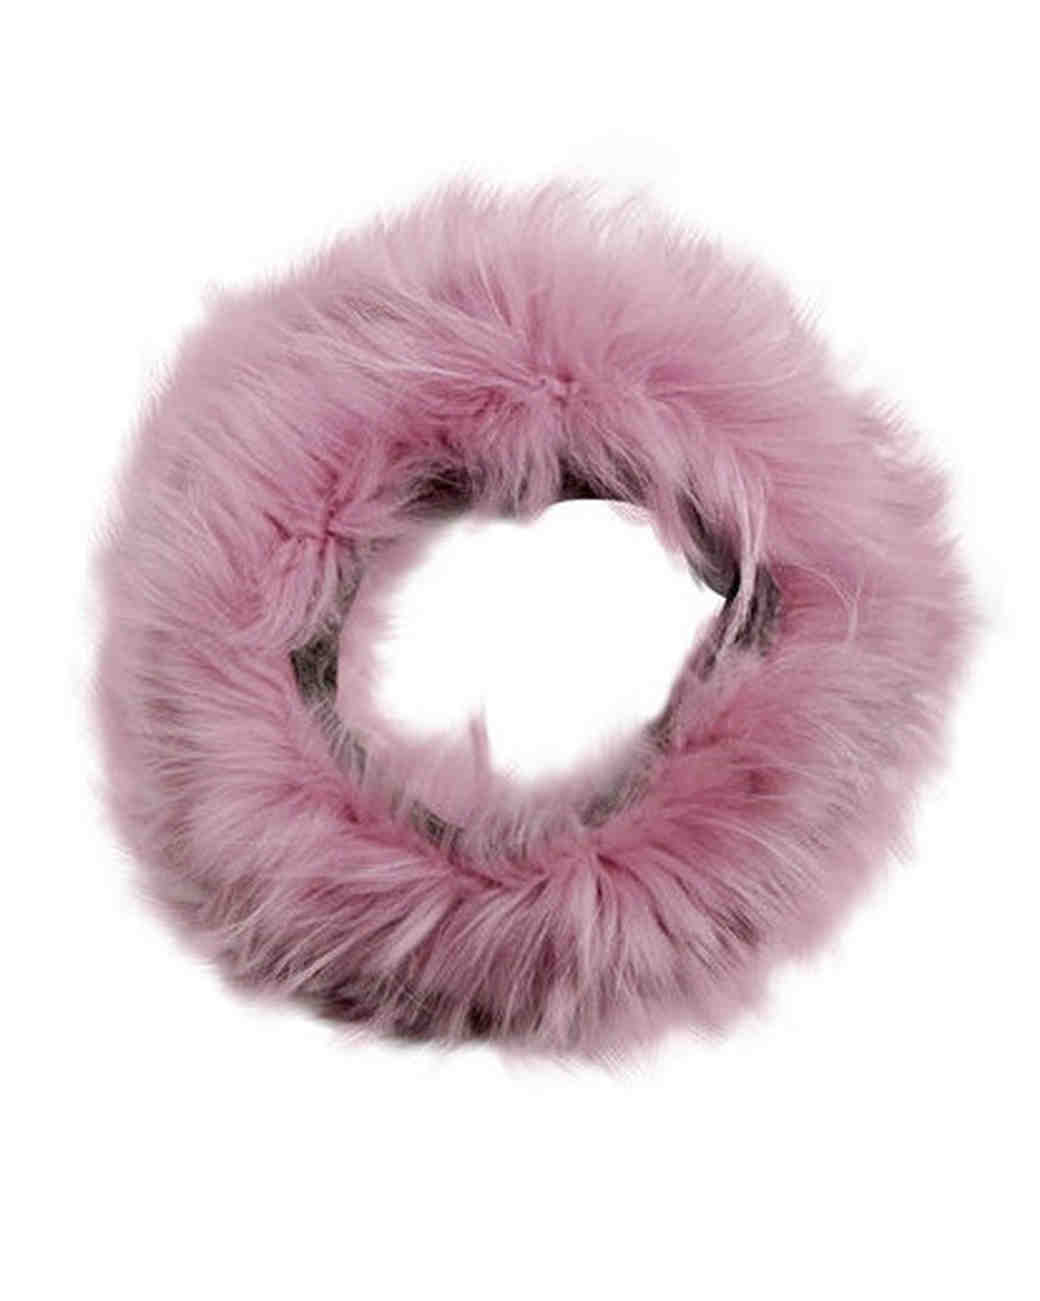 mr mrs italy murmansky fur headband